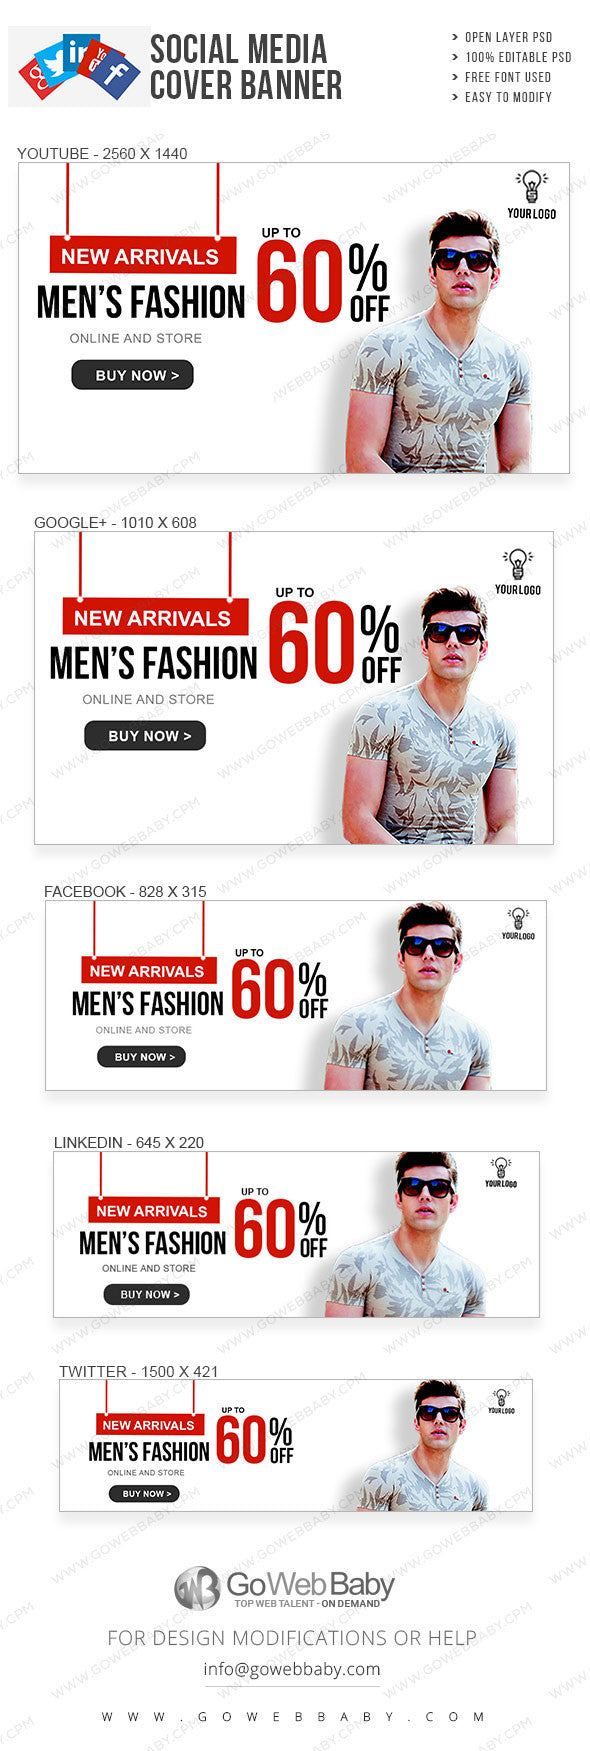 Social Media Cover Banner - Men's clothing for website marketing